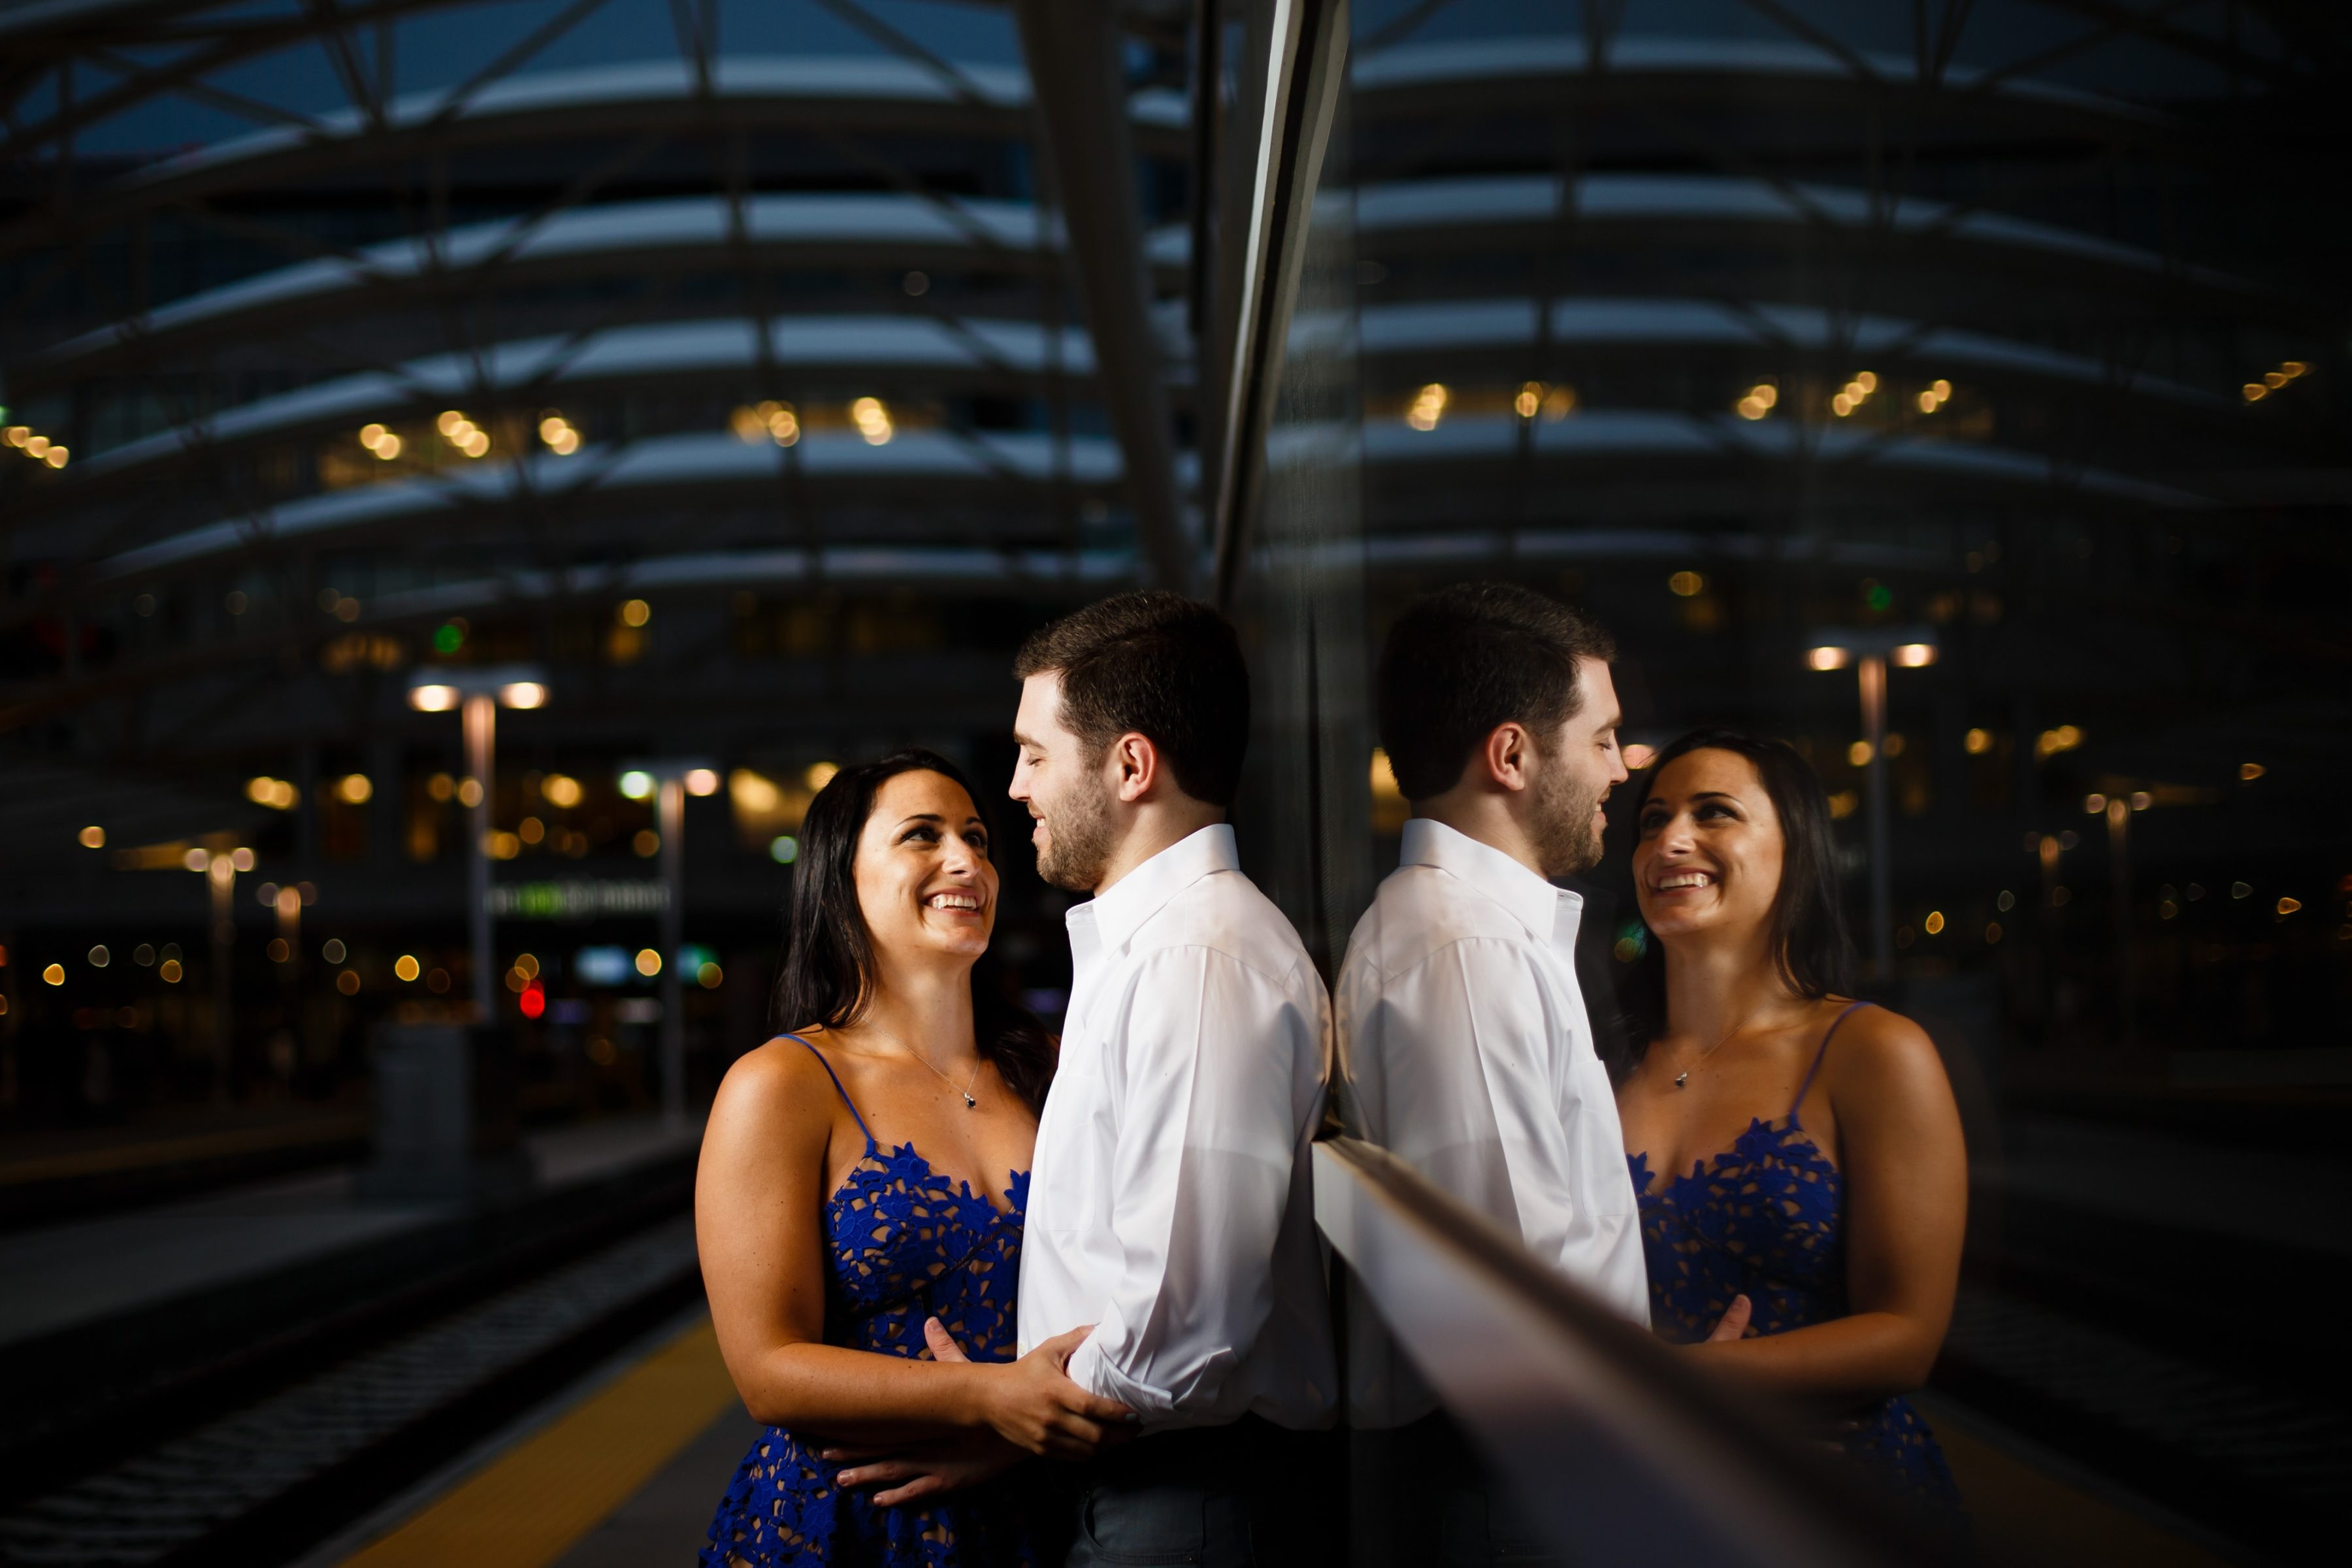 Danielle and Jordan embrace each other on the platform at Union Station in Denver, Colorado for their engagement photos